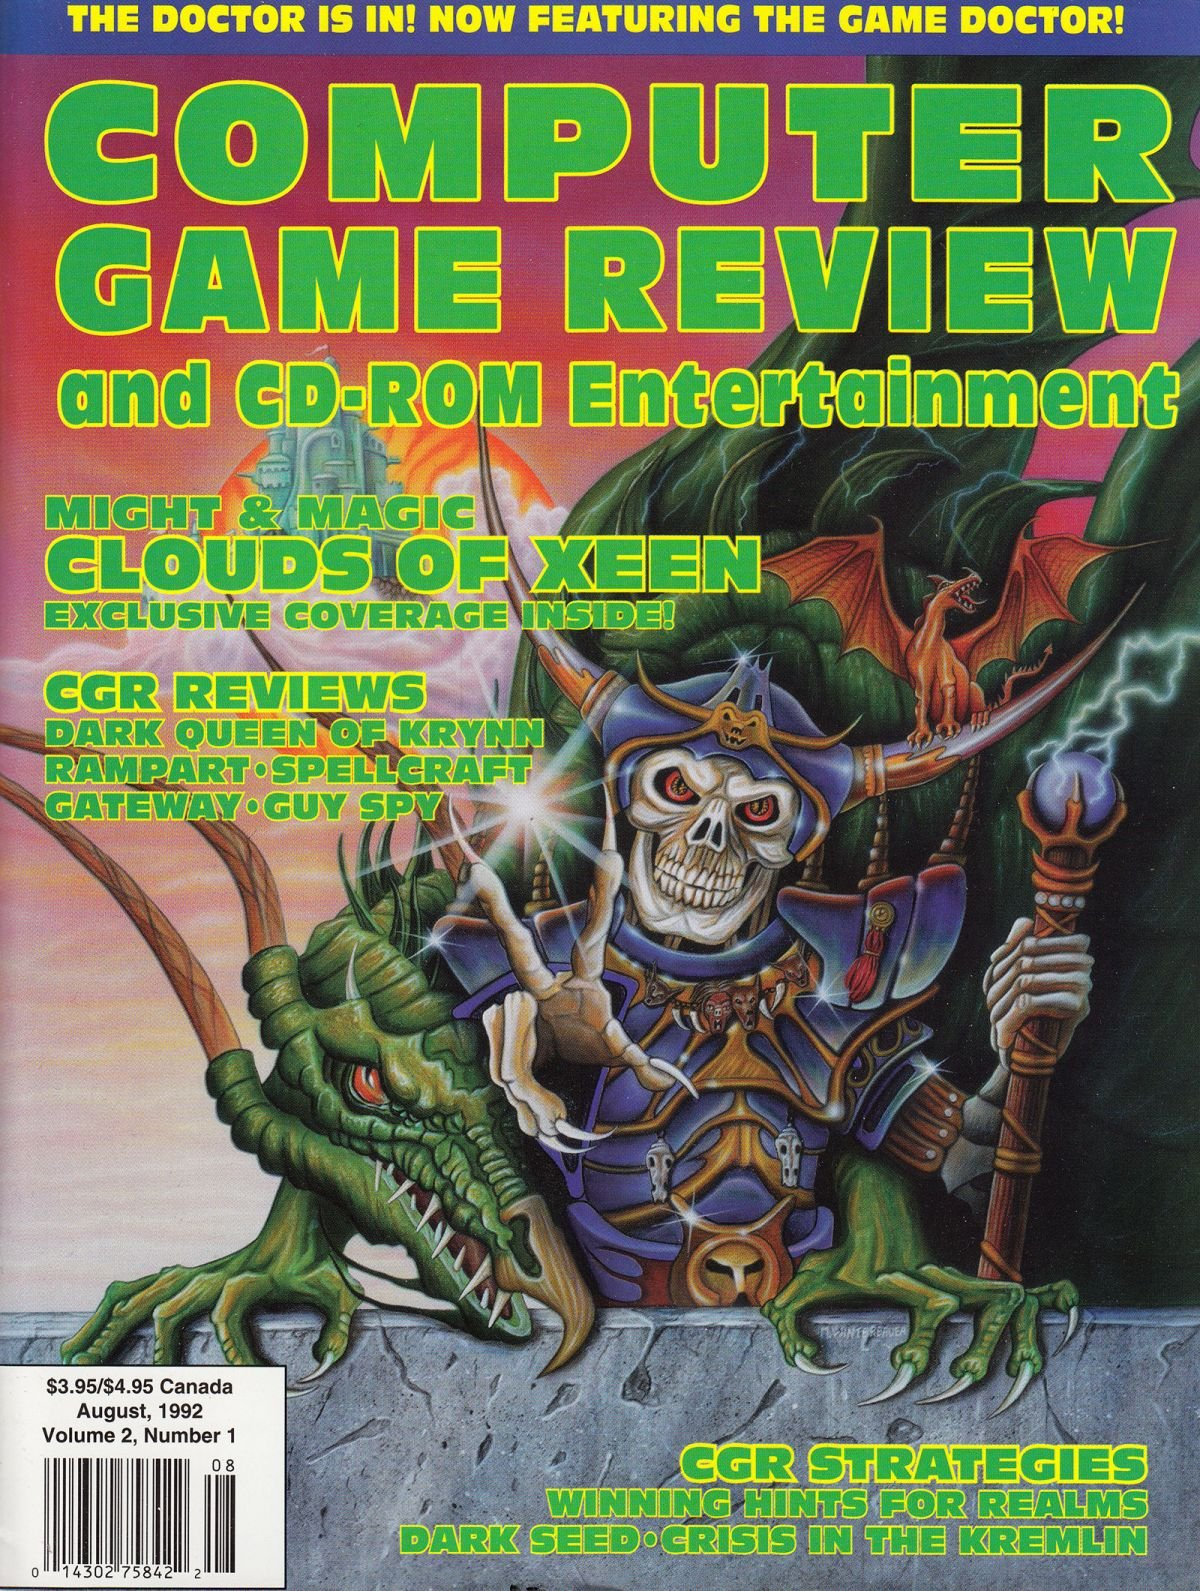 Computer Game Review Issue 13 (August 1992)